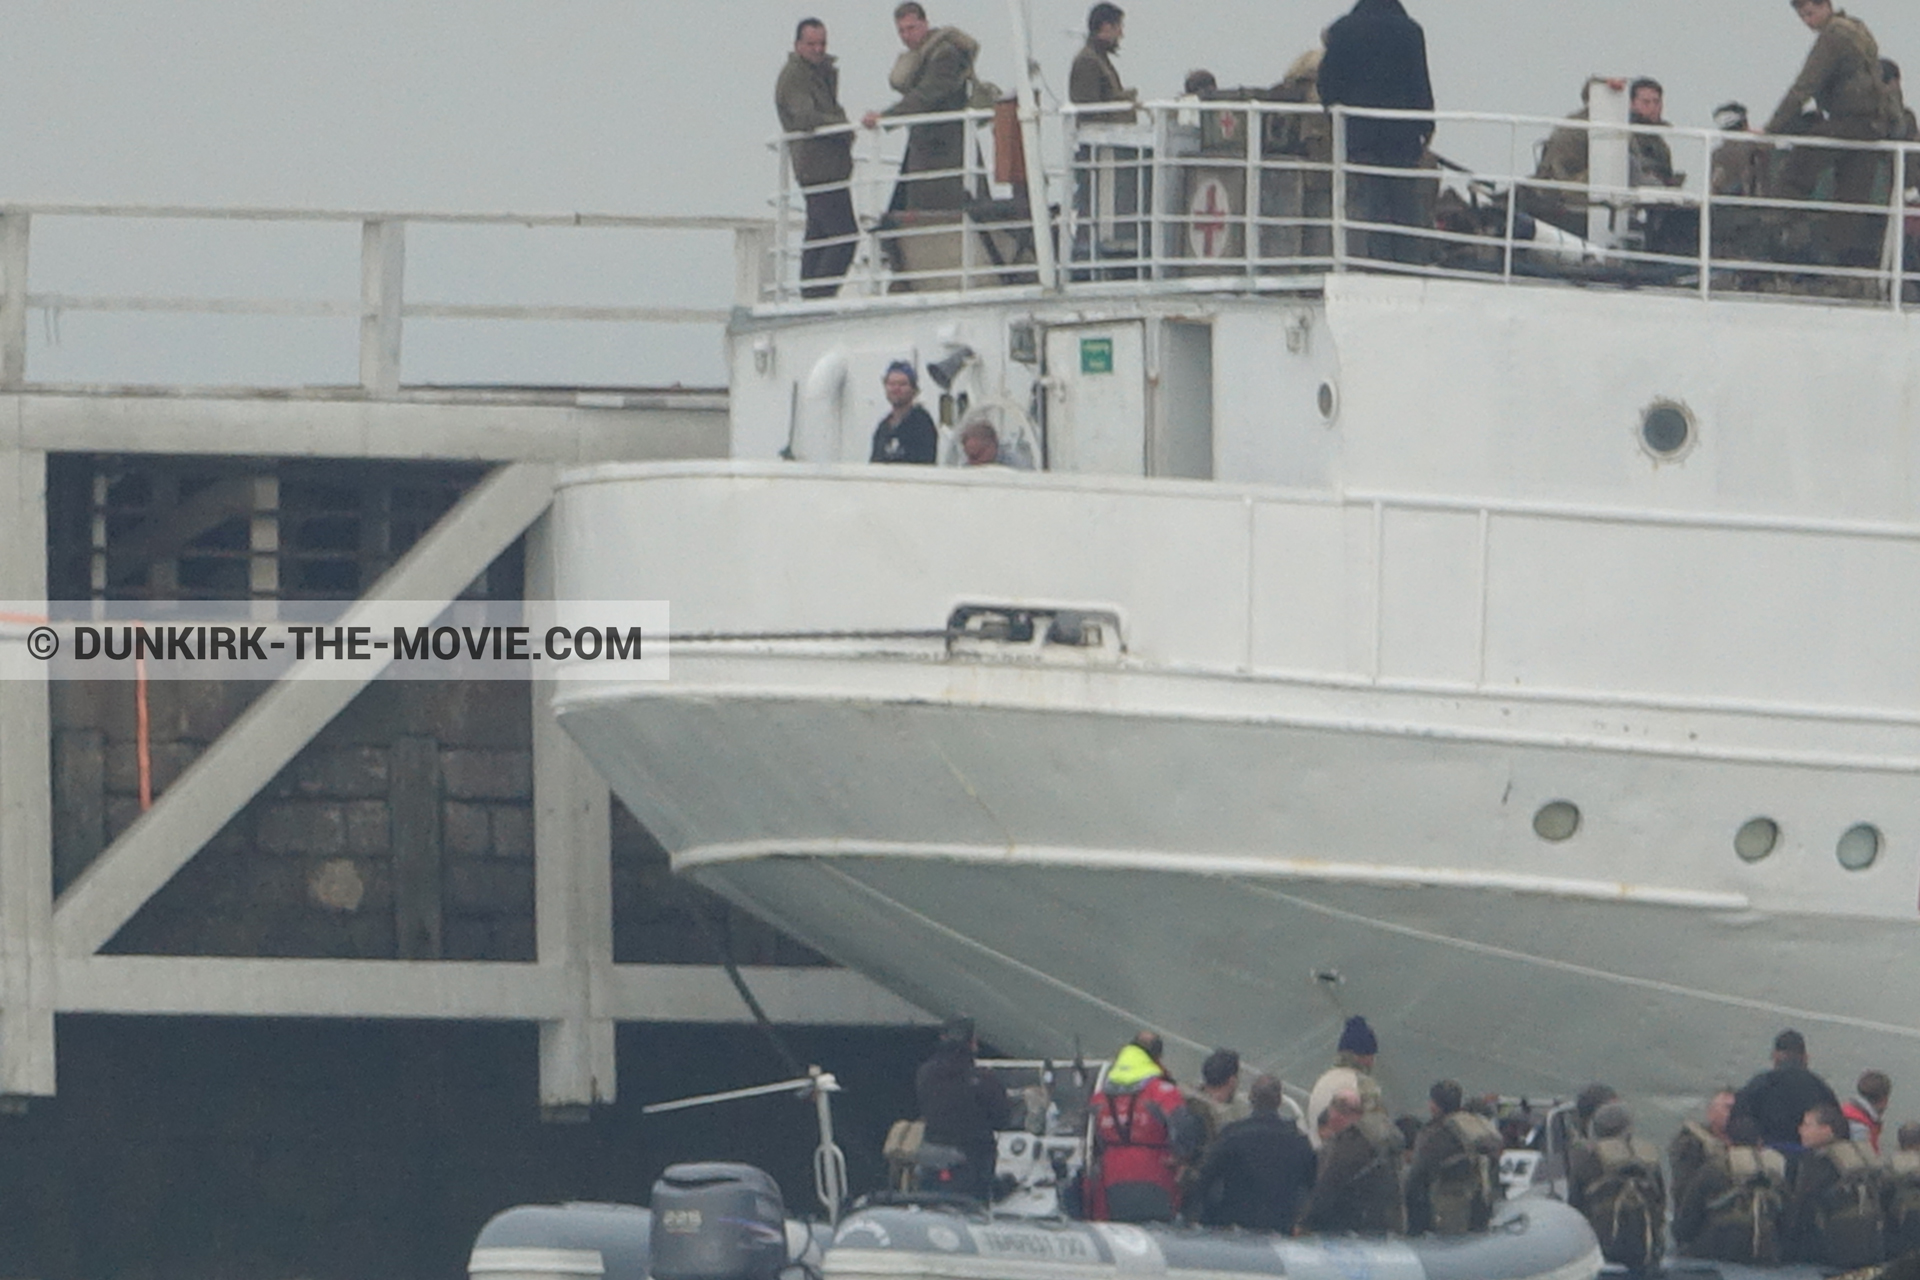 Picture with grey sky, supernumeraries, EST pier, technical team, inflatable dinghy, M/S Rogaland,  from behind the scene of the Dunkirk movie by Nolan